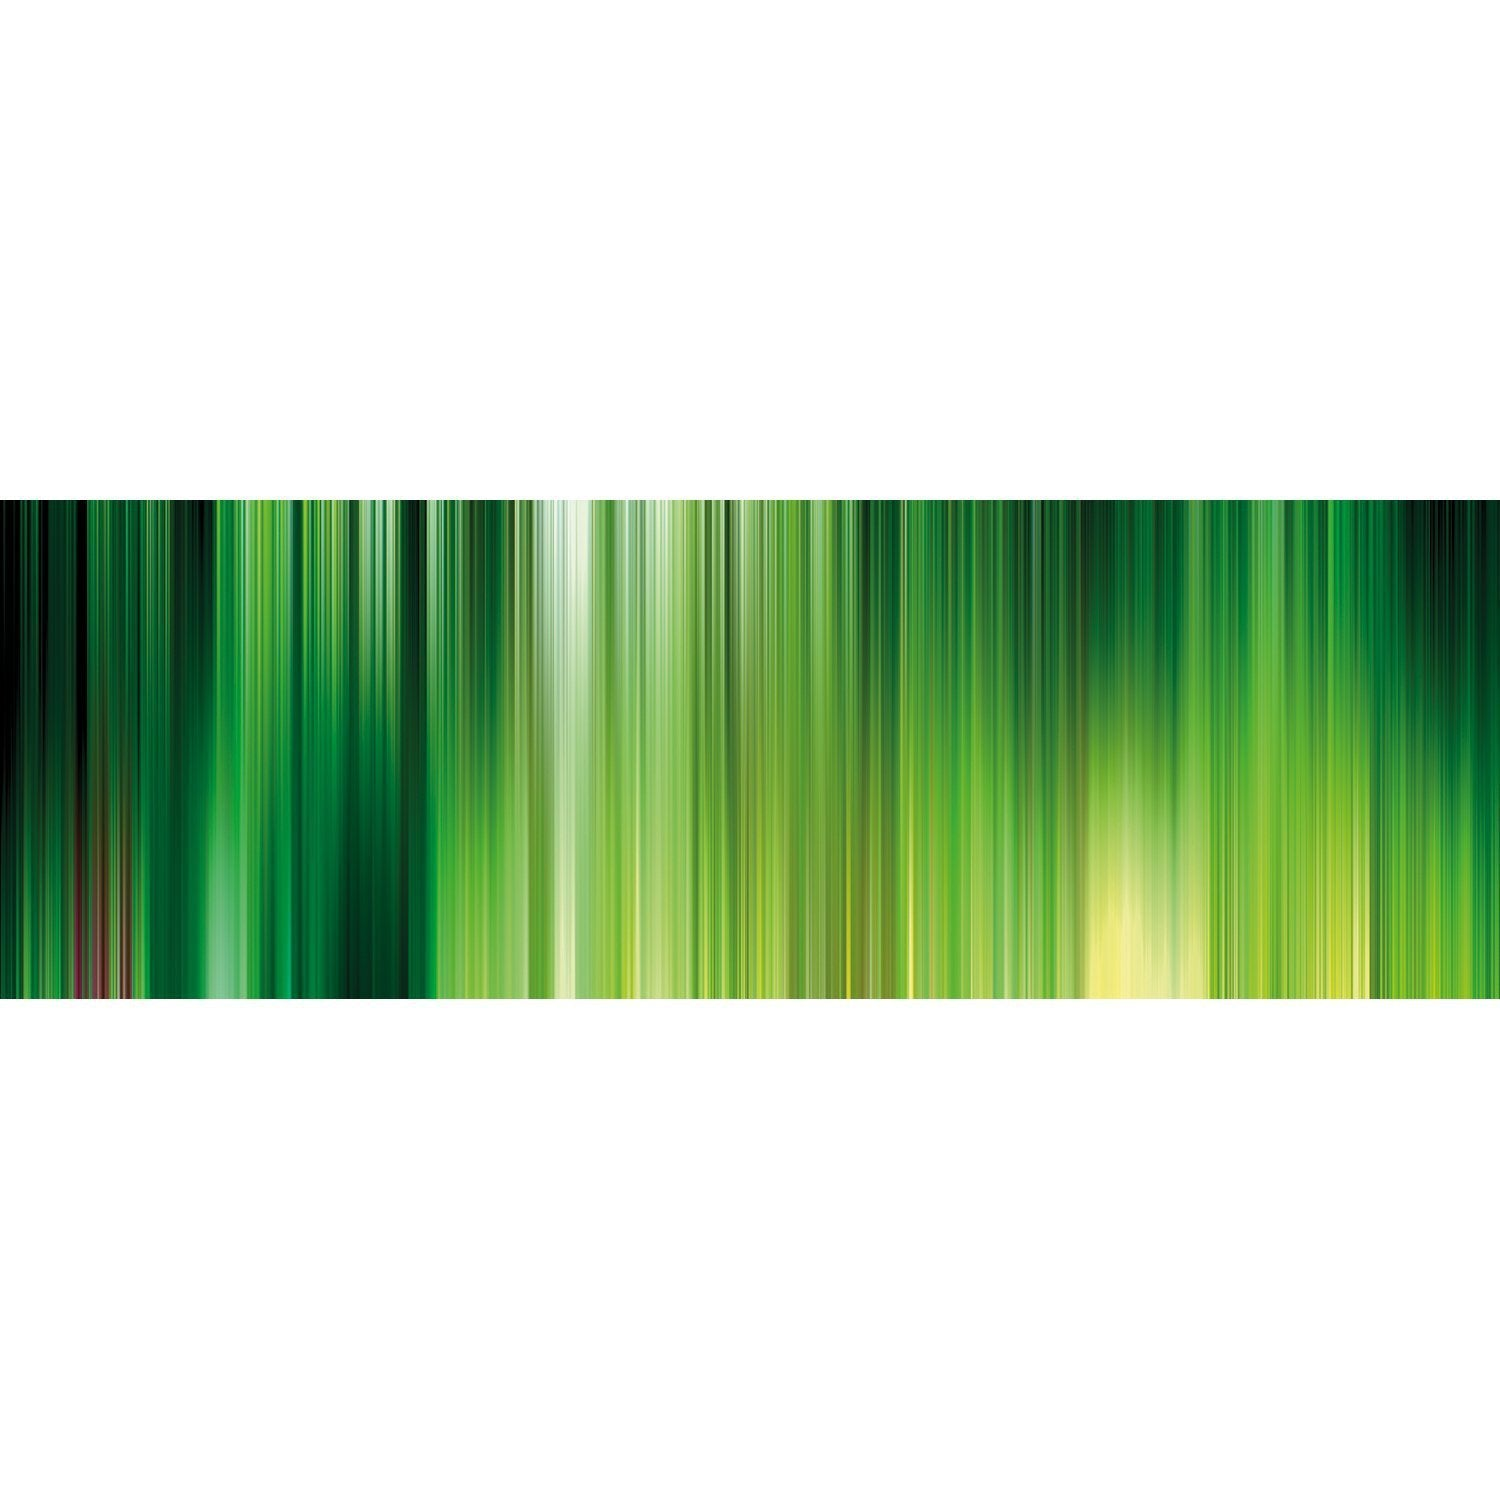 Wall Acoustics Full Size Mural Muffle Abstract Mural - Kinetic Green Full Size Mural